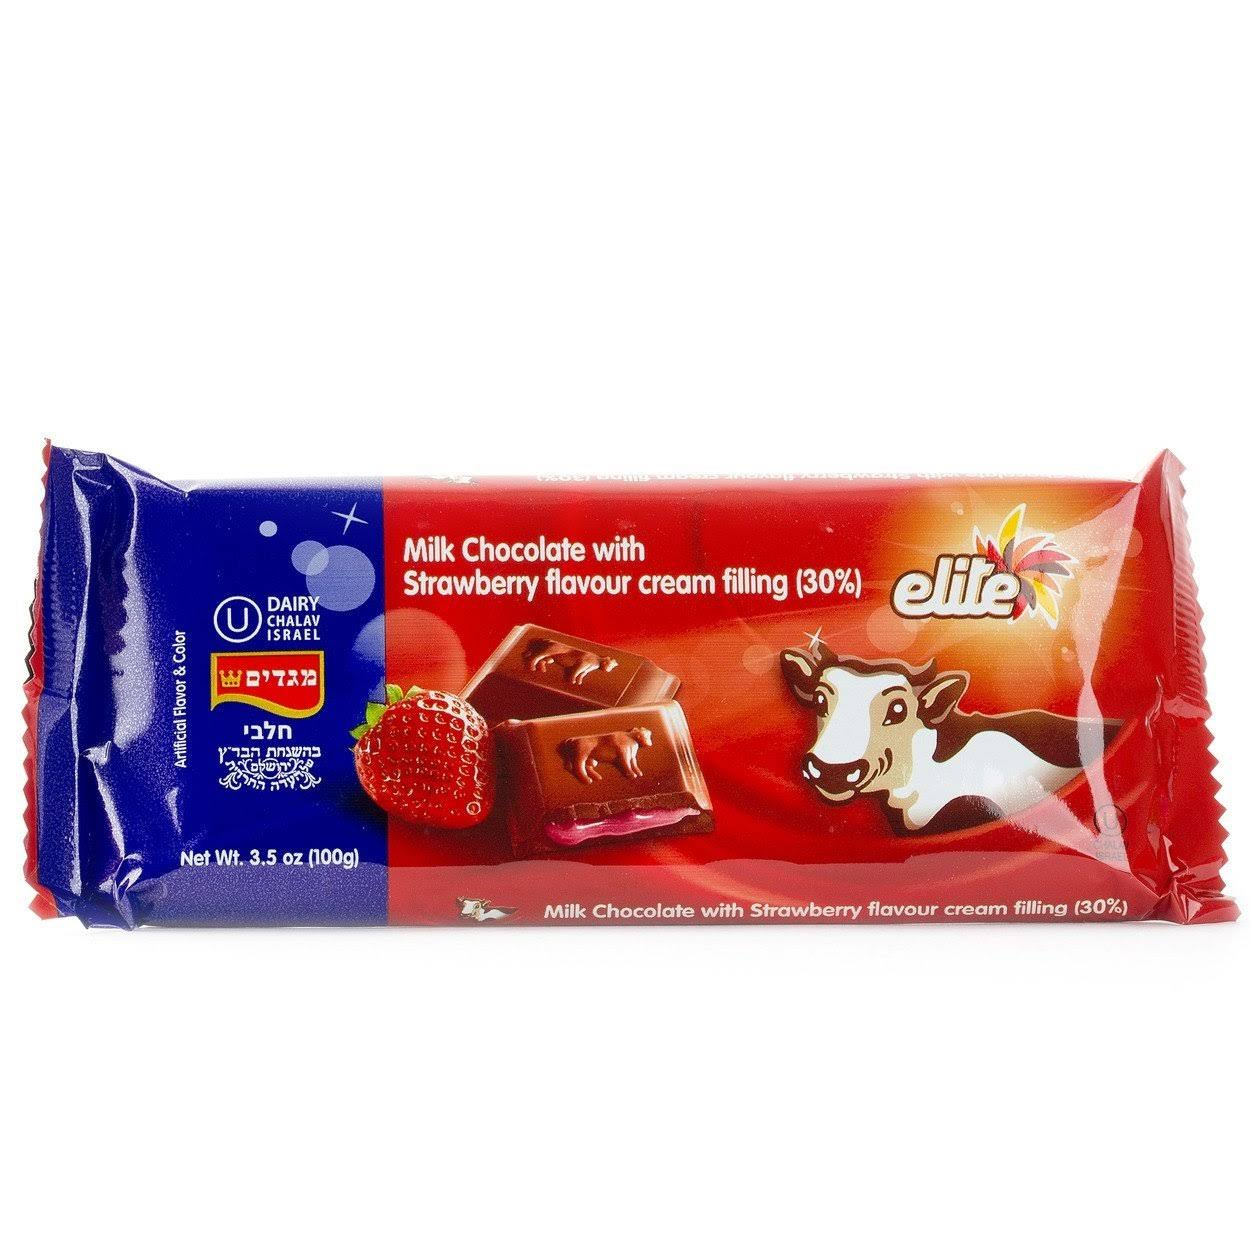 Elite Milk Chocolate Filled with Strawberry Flavored Cream 3.5 oz